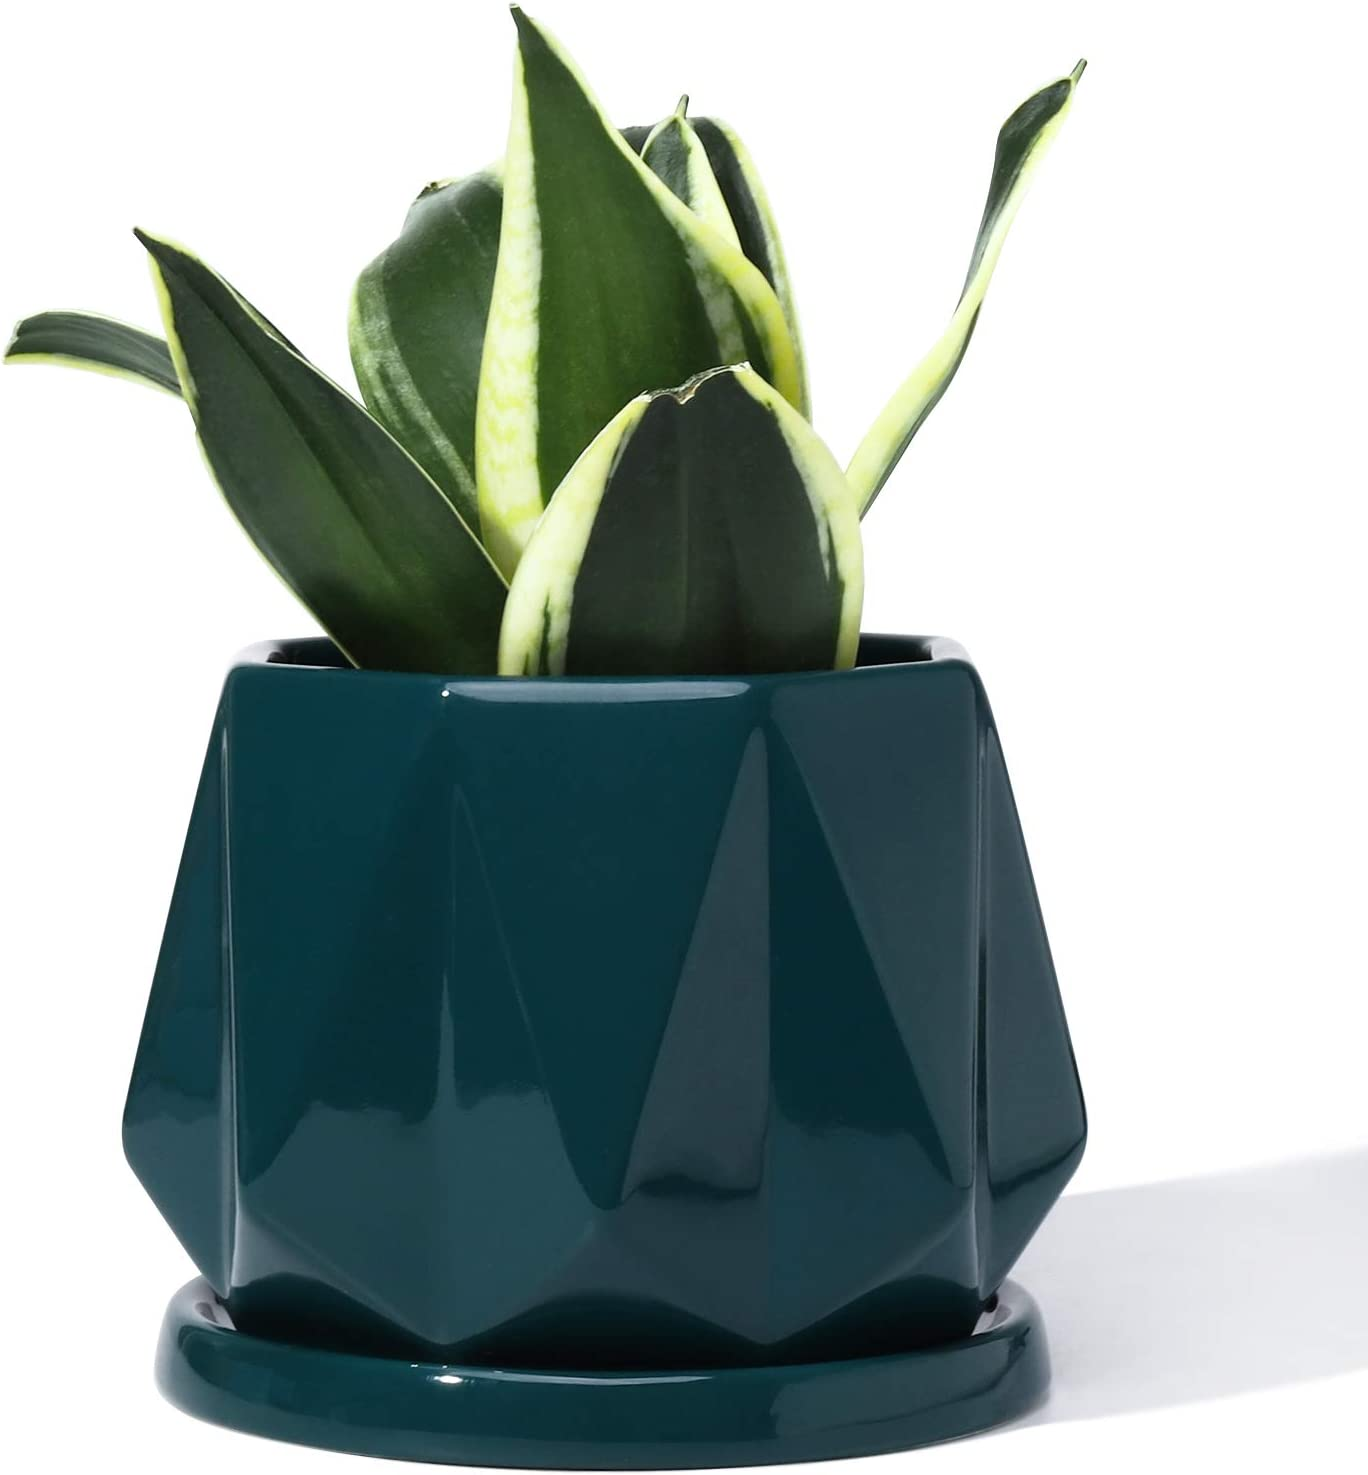 POTEY 052706 Planter Pots Indoor - 4.7 Inch Glazed Ceramic Modern Home Decor Geometric Shaped Planters Indoor Bonsai Container with Drainage Hole&Saucer for Plants Flower Aloe(Plants Not Included)